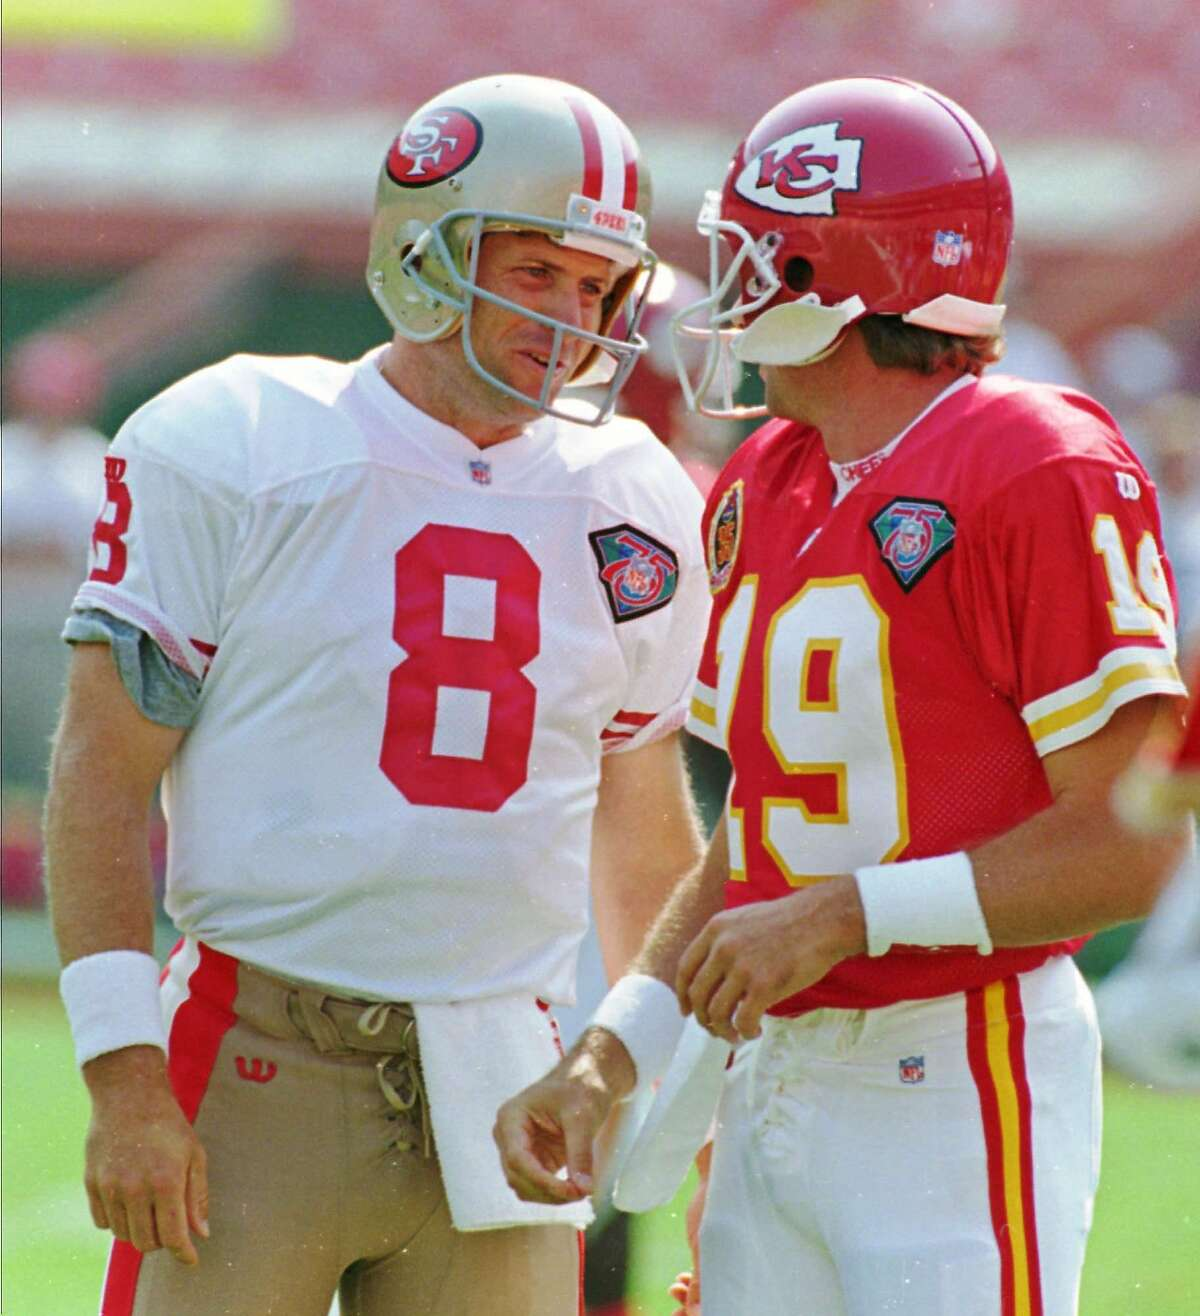 FOR USE AS DESIRED--FILE--Kansas City Chiefs quarterback Joe Montana, right, chats with San Francisco 49ers quarterback Steve Young prior to their game on Sept. 10, 1994, in Kansas City, Mo. Young was Montana's backup in the1989-90 Super Bowl wins by the 49ers. (AP Photo/Cliff Schiappa, file)